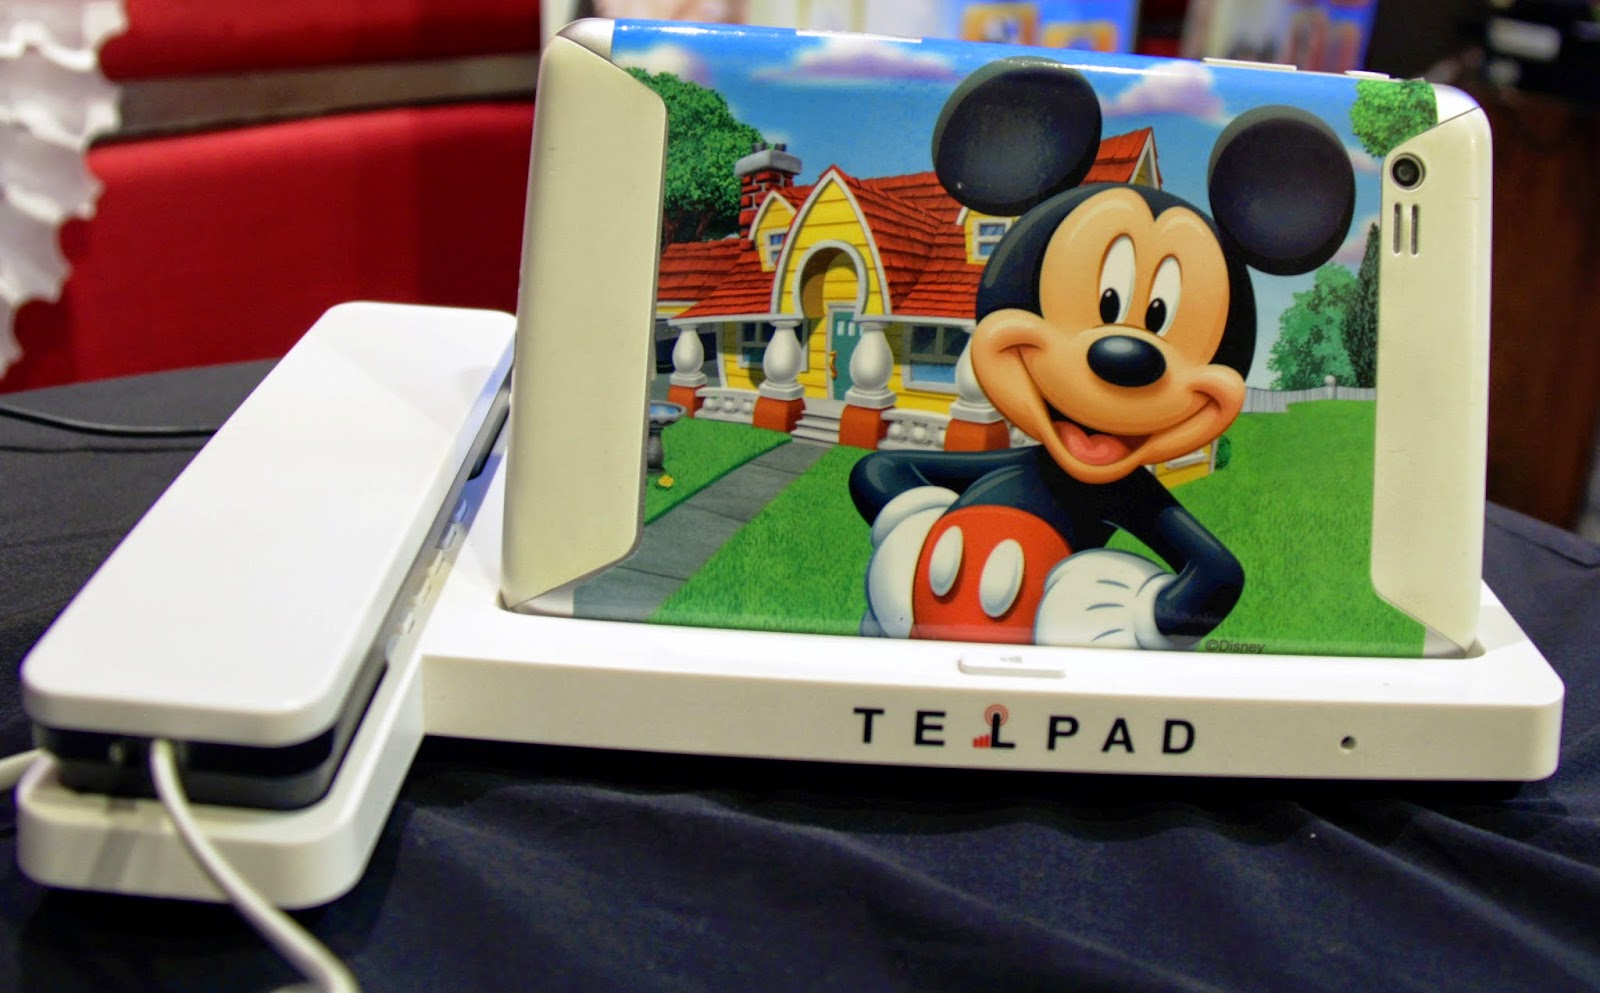 PLDT HOME Disney Telpad